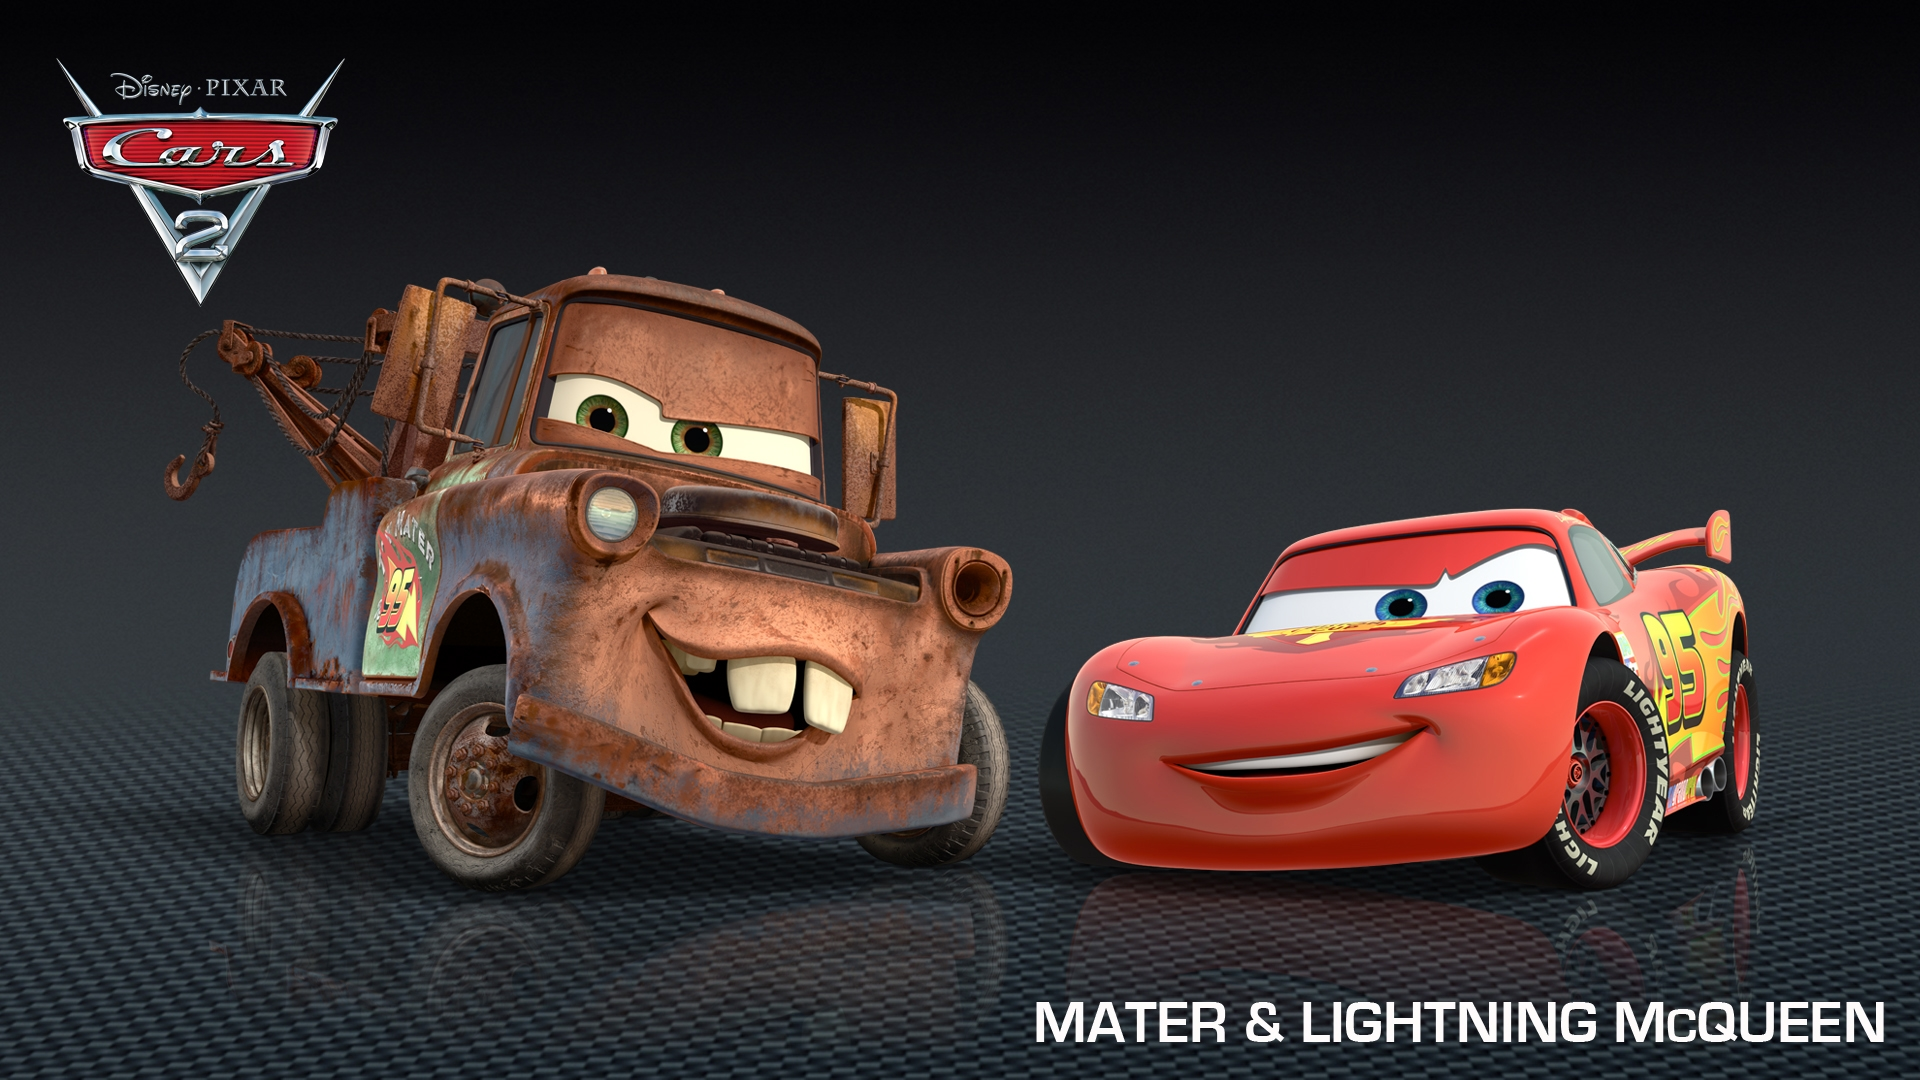 mater lightning mcqueen disney pixar cars 2 free hd wallpaper